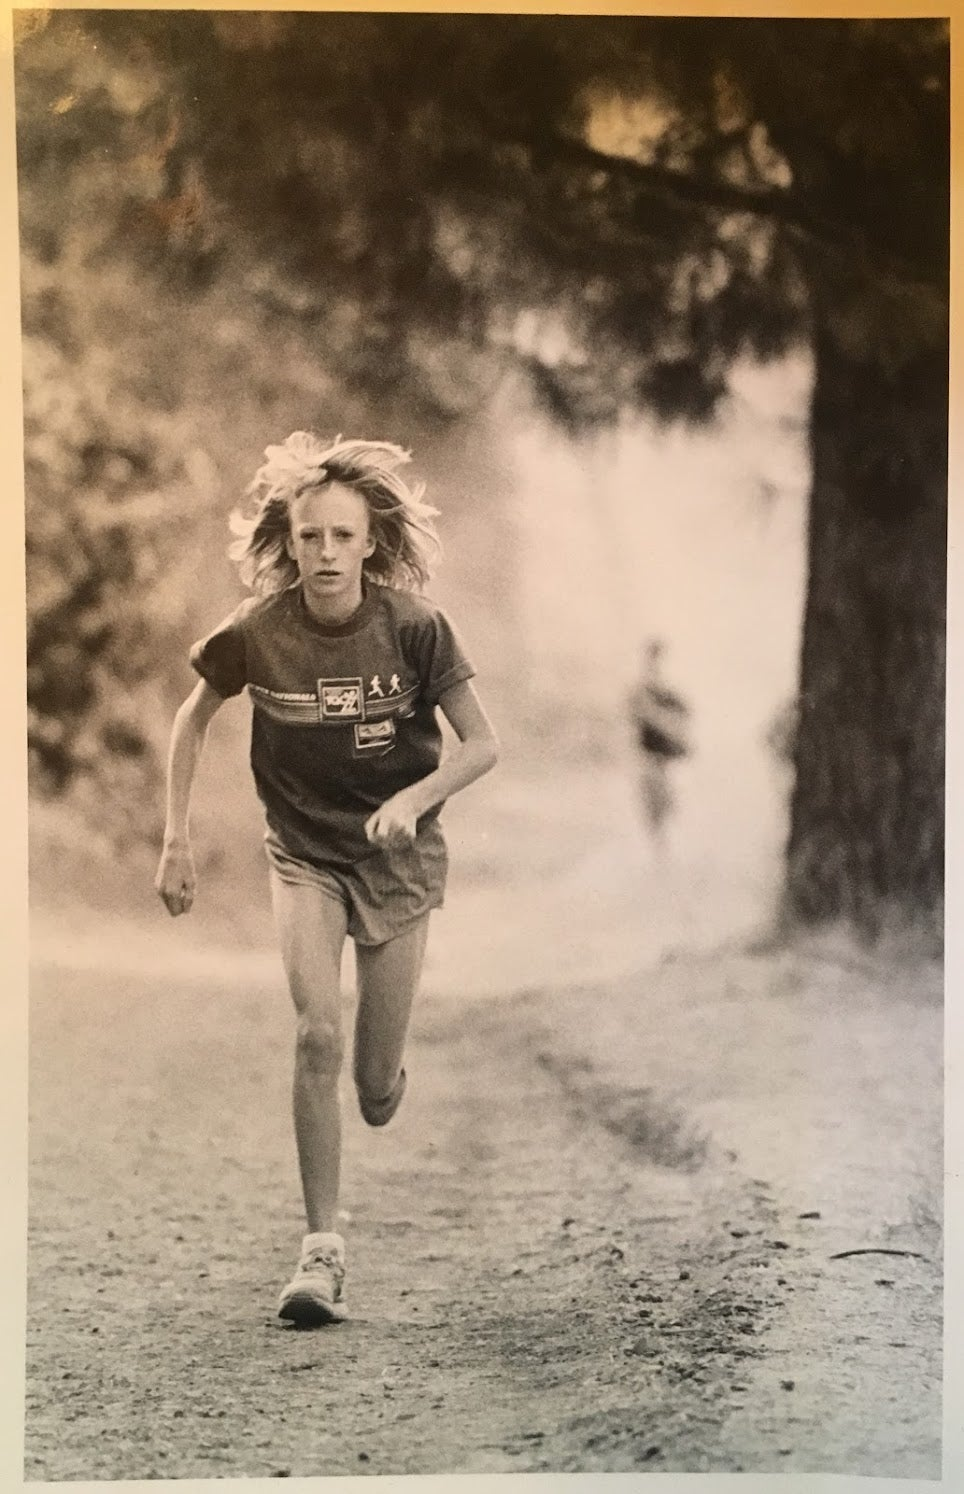 Deena Kastor discovers her talent as a young runner